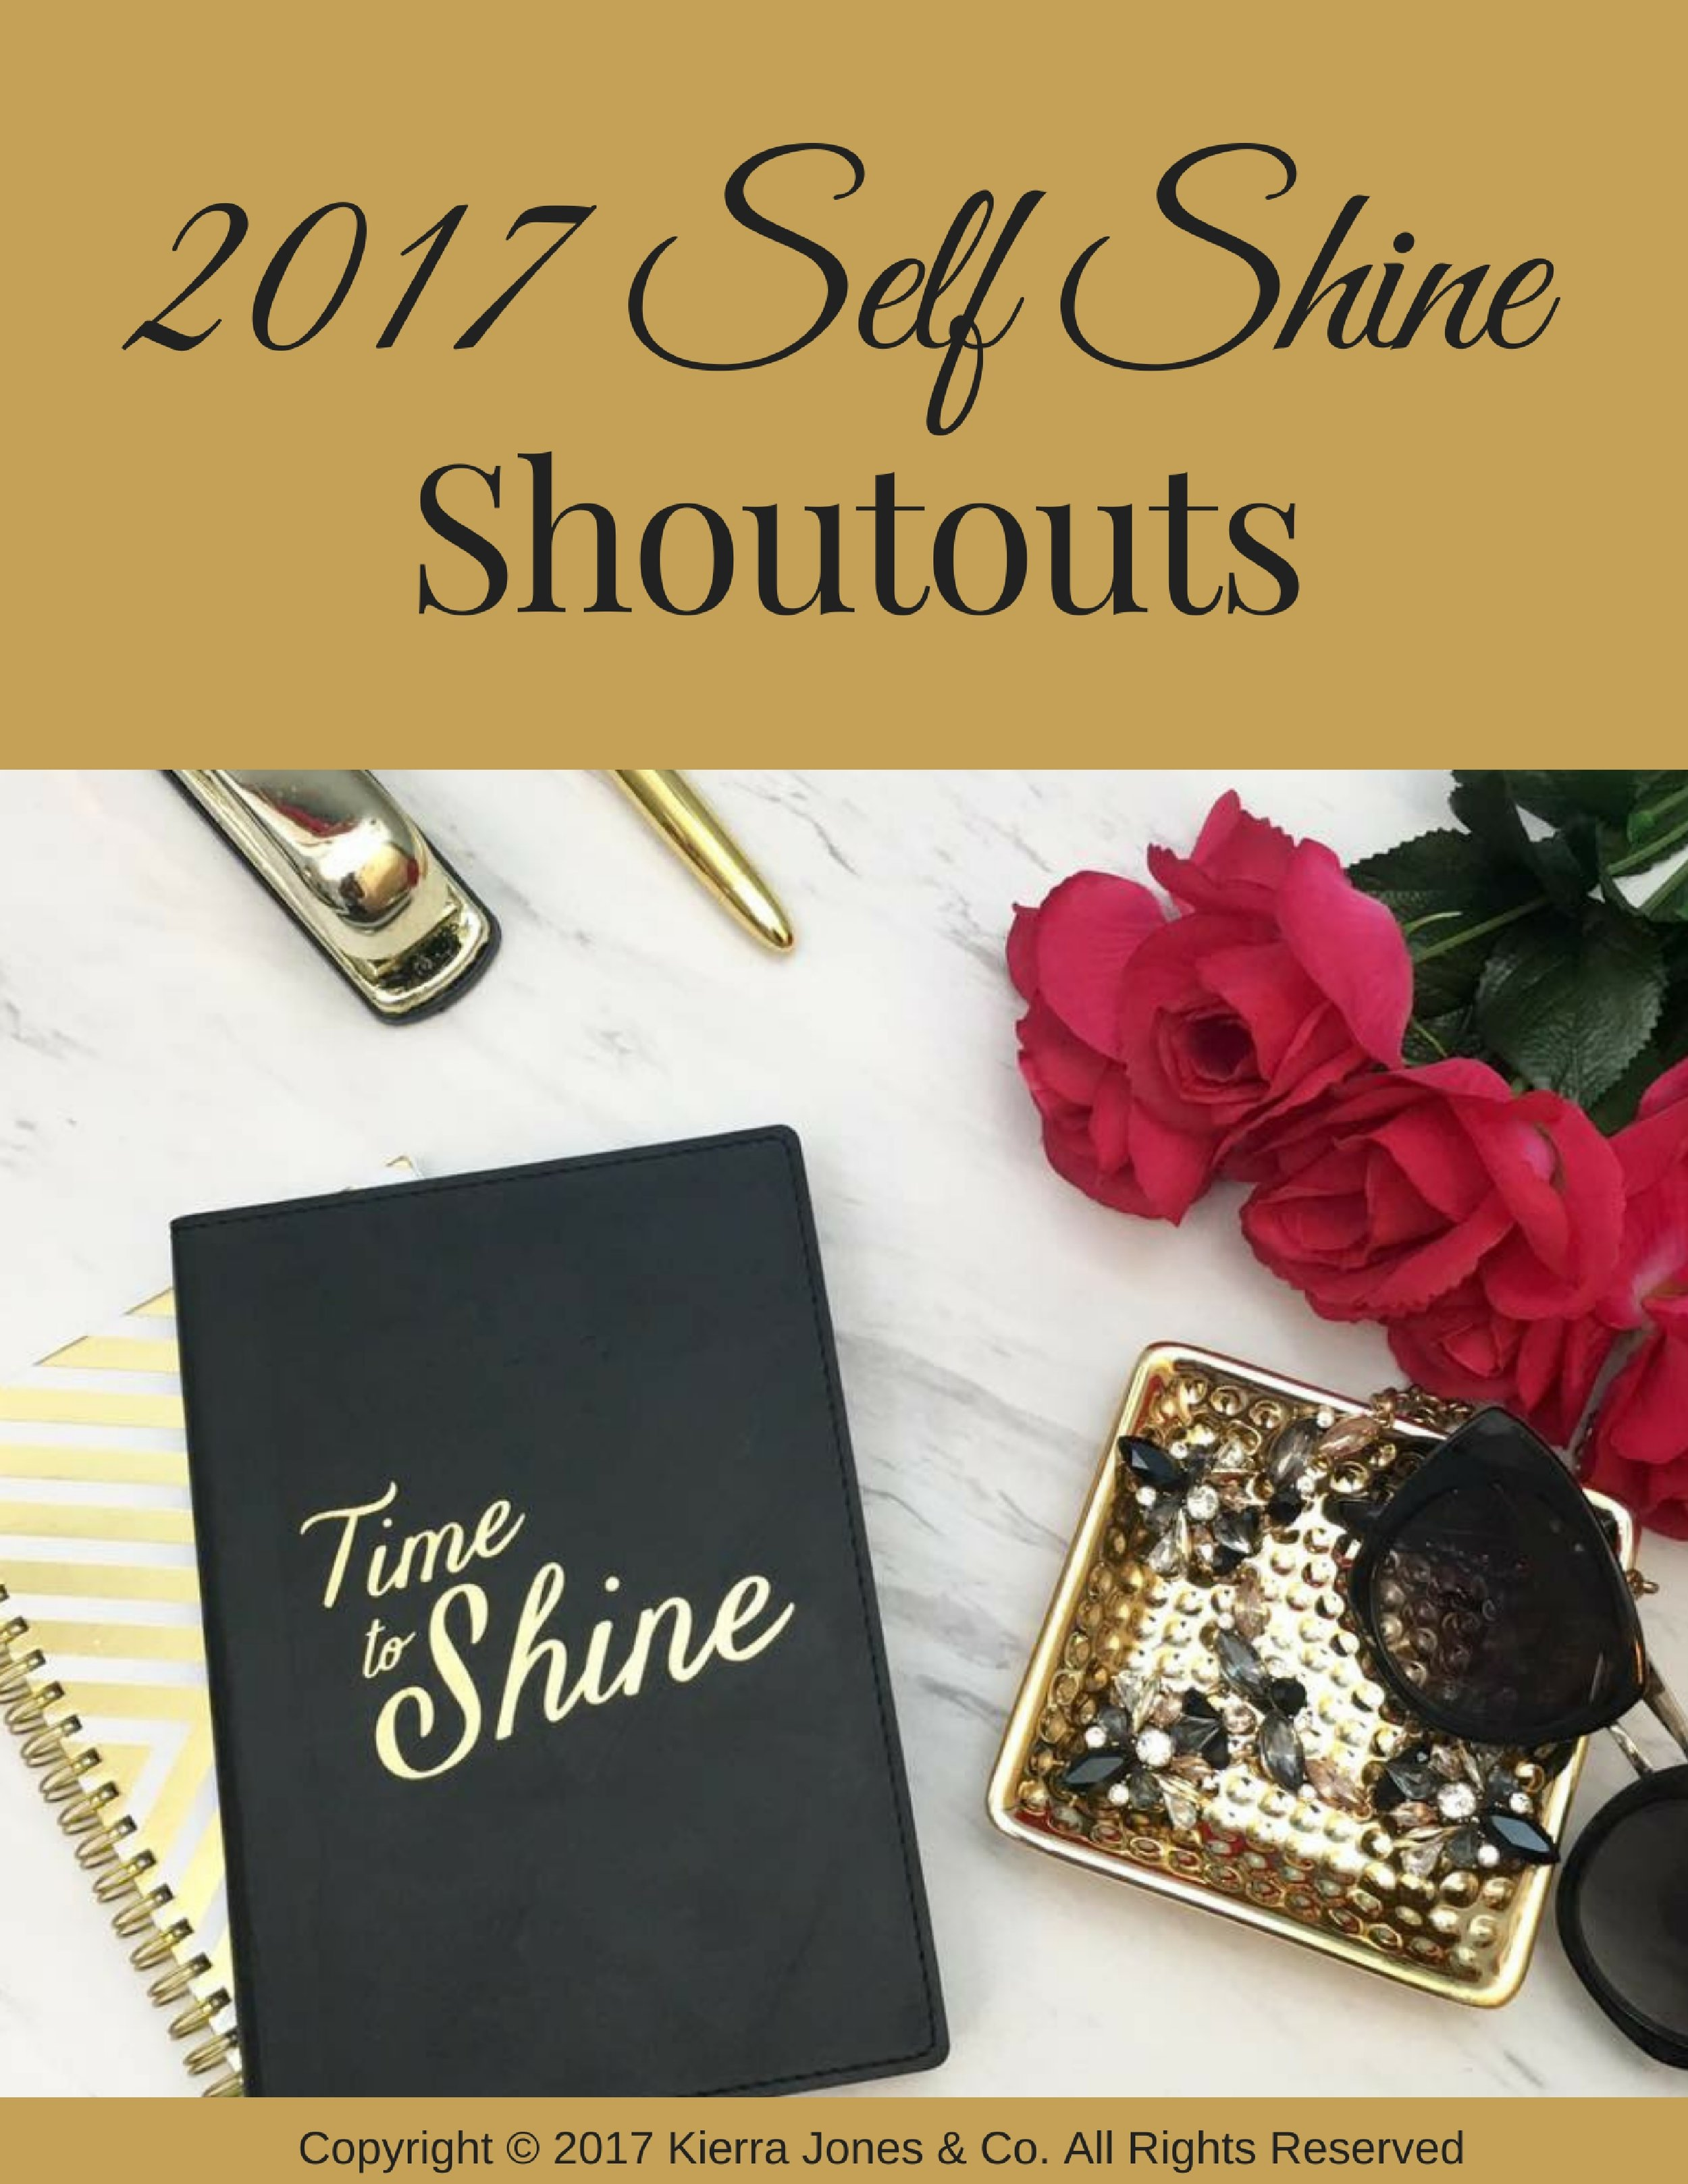 Ready to stop being your worst critic, beating yourself up about all the things you HAVE NOT done?  It's time to start celebrating your shine girl!